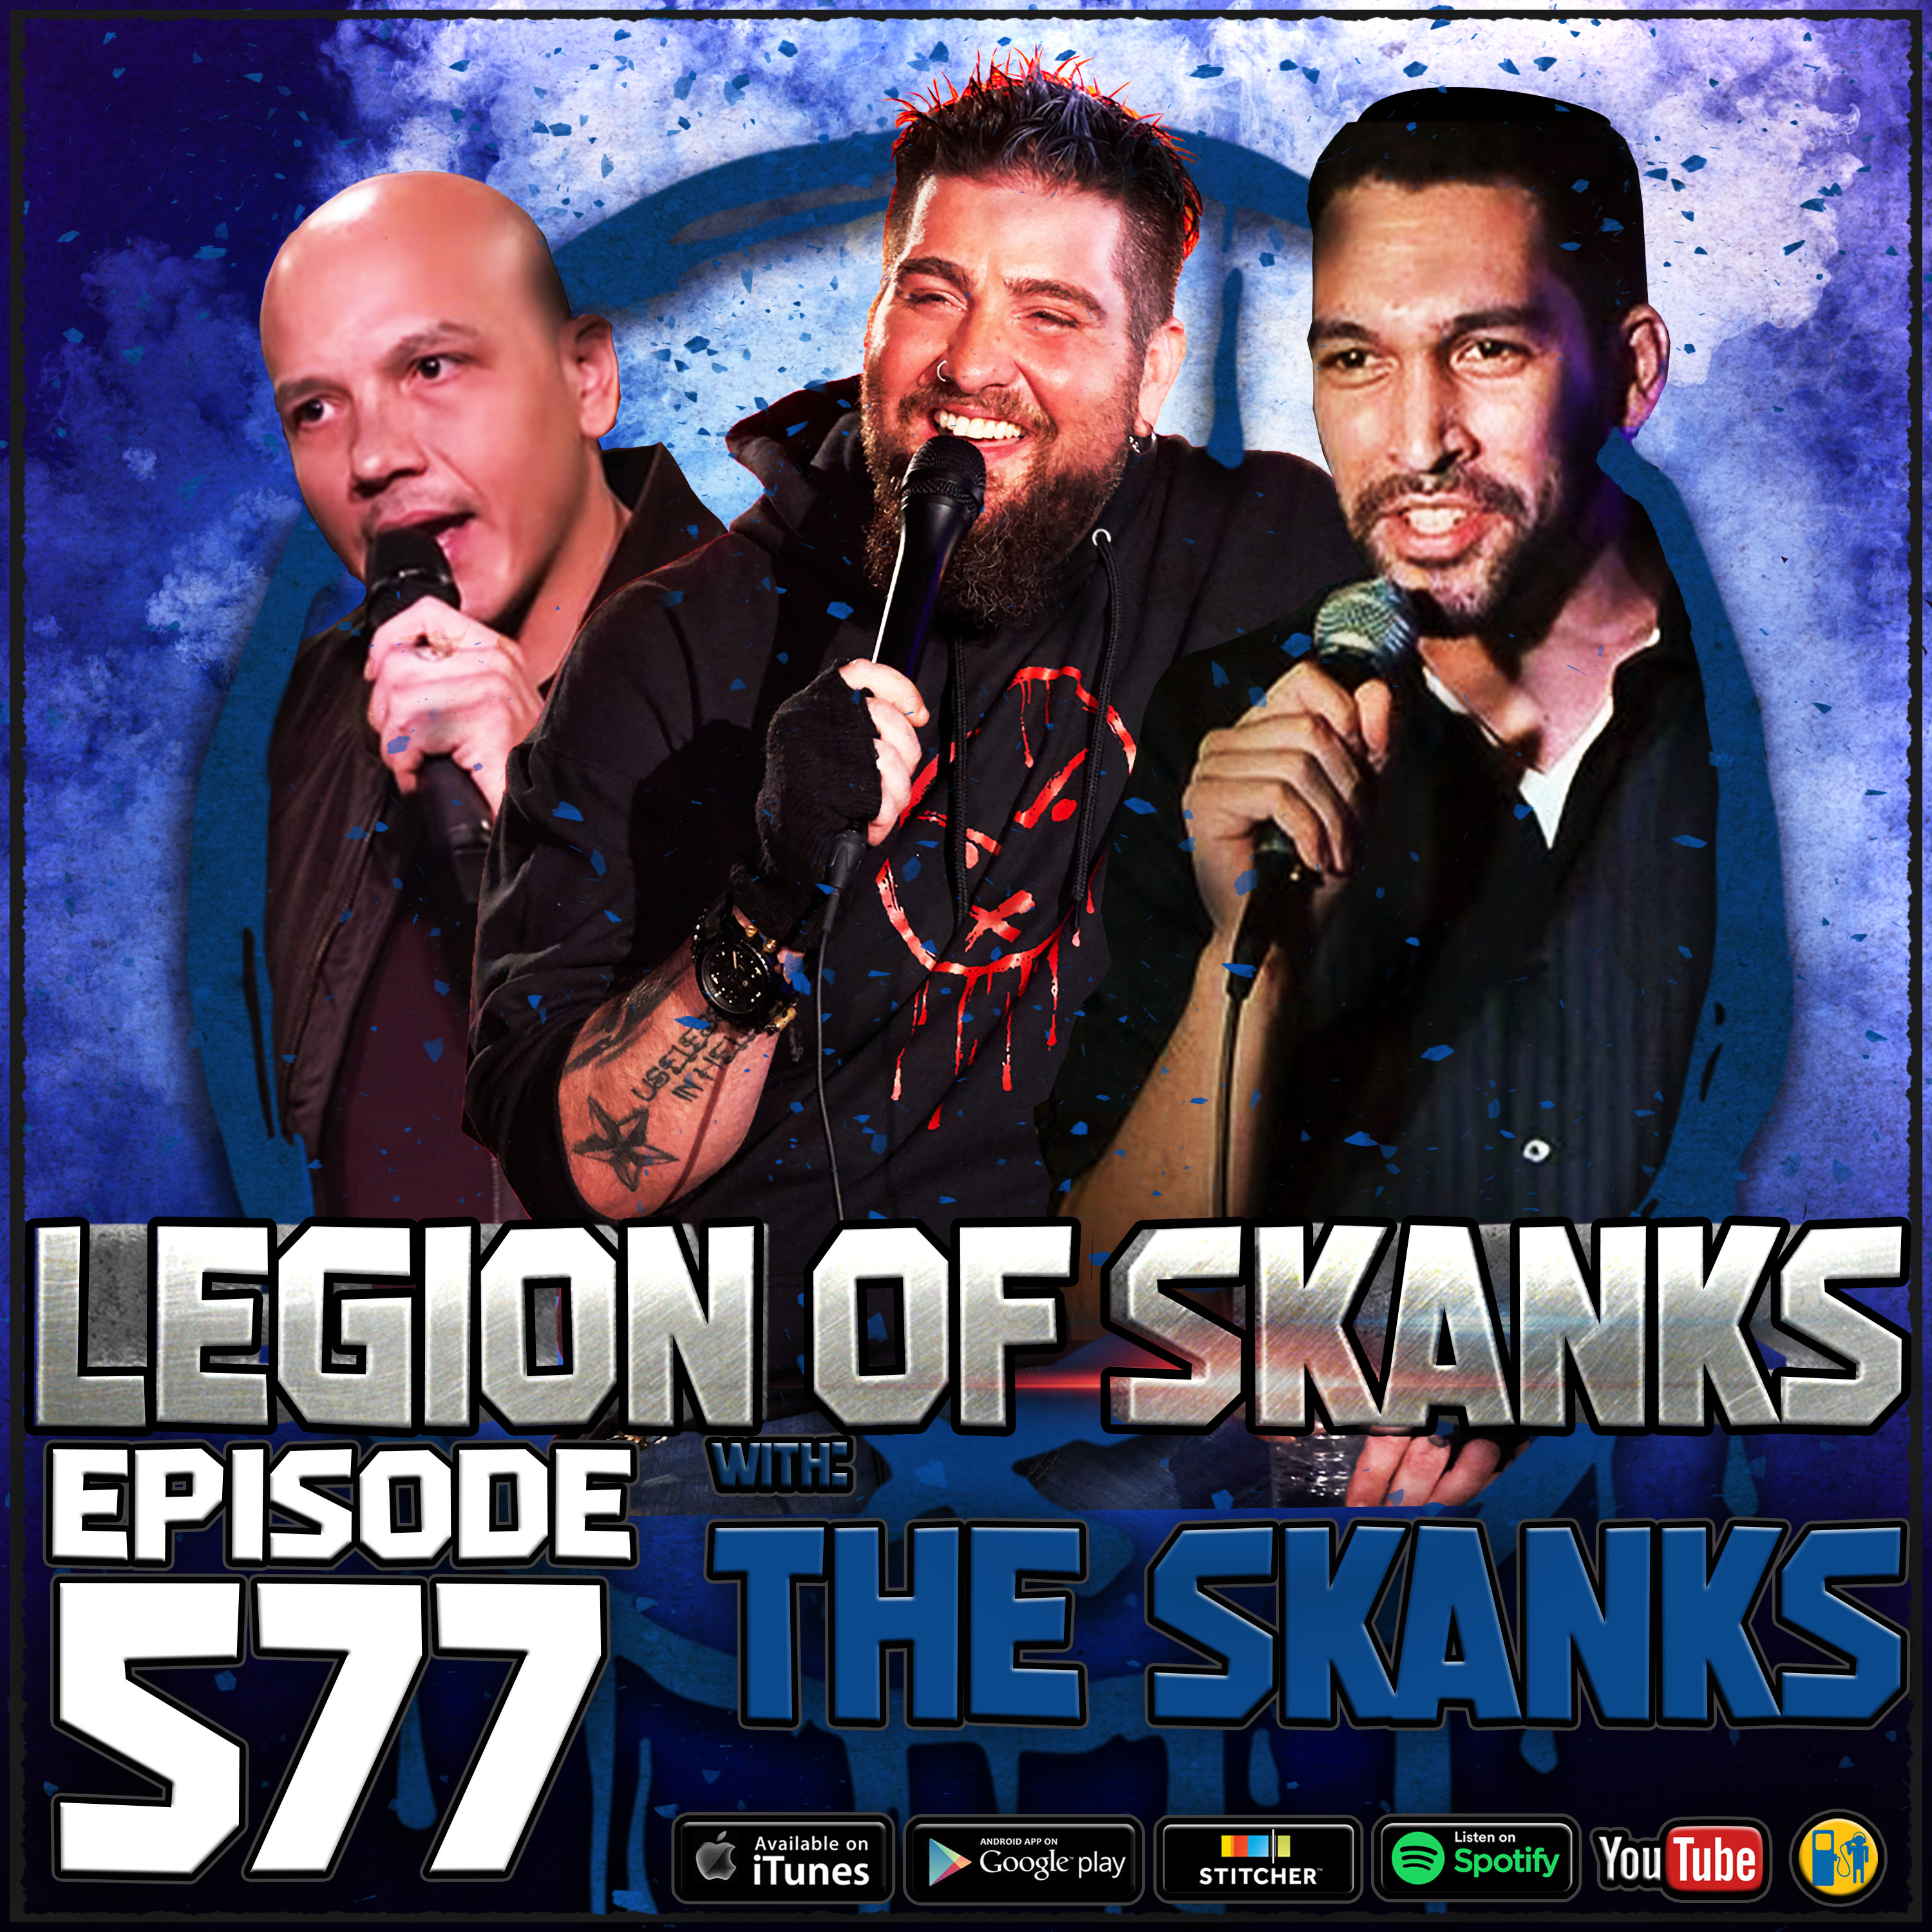 Episode #577 - Army of Ring Dings